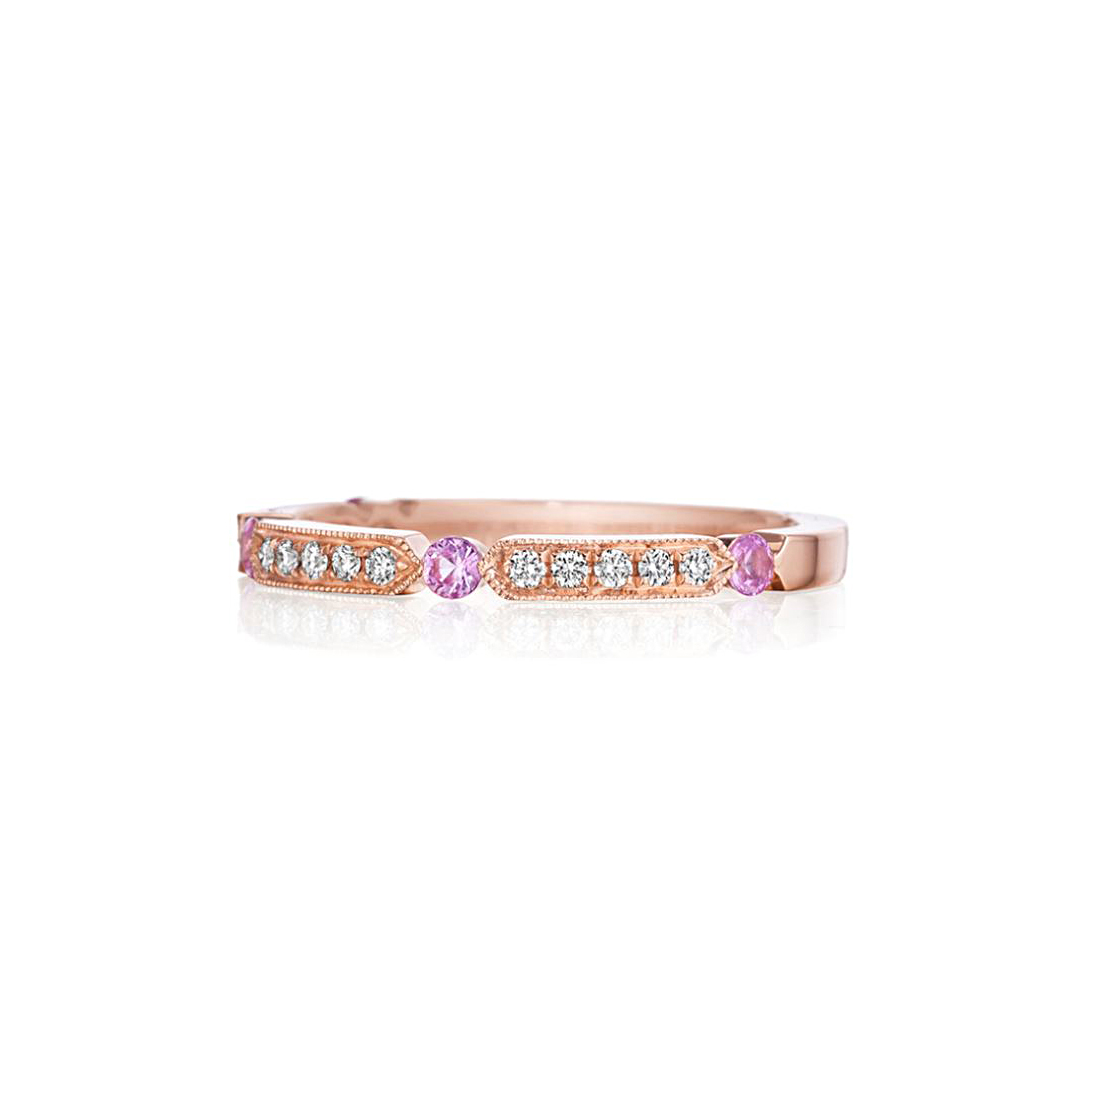 Henri Daussi 14 Karat Rose Gold Pink Sapphire and Diamond Band